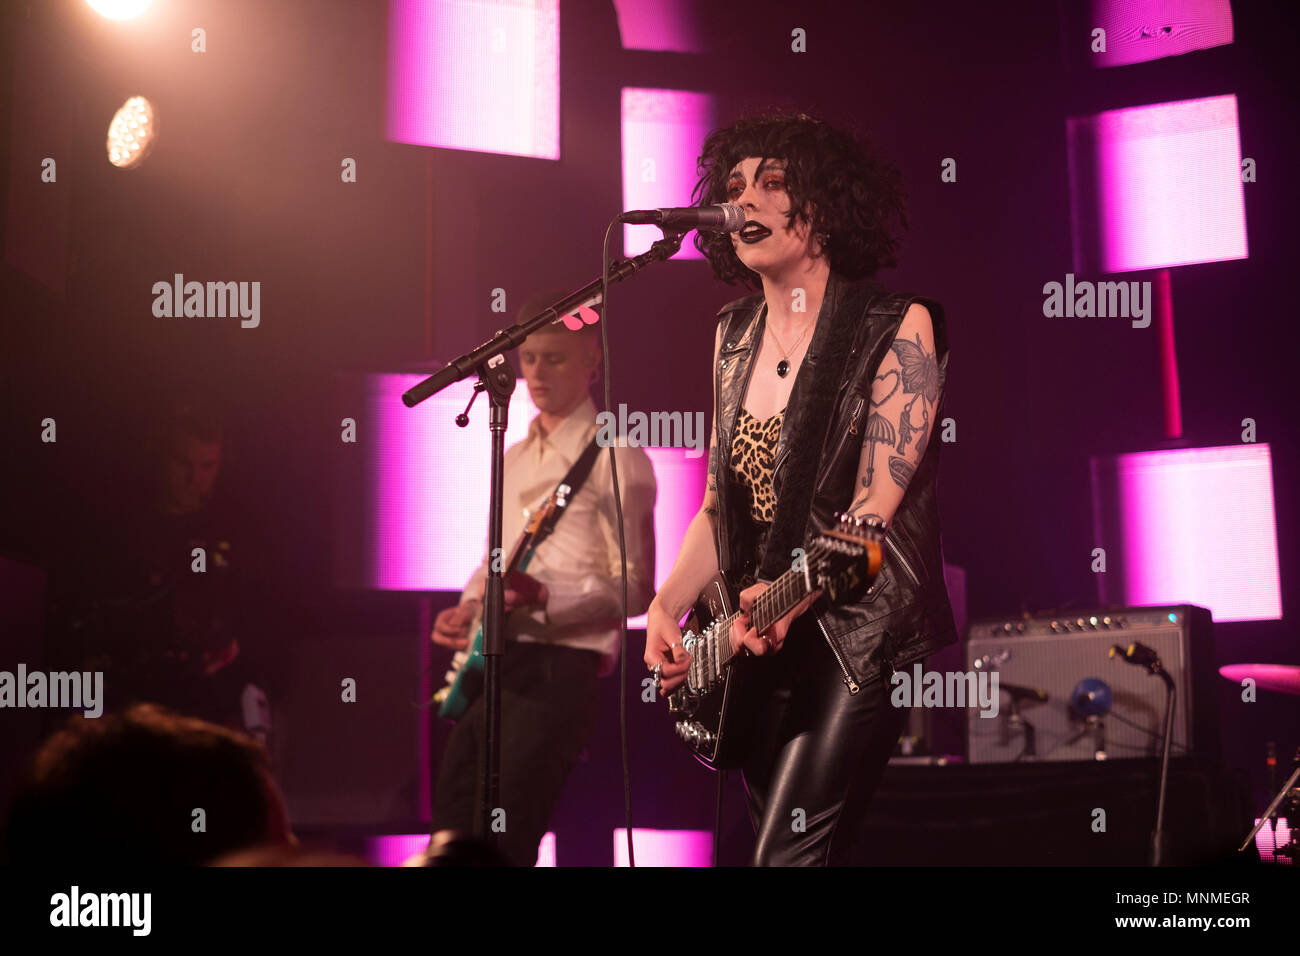 Brighton, UK. 17th May, 2018. The indie band Pale Waves play at the Wagner Hall venue on the first day of The Great Escape Festival 2018Credit: Scott Hortop Travel/Alamy Live News - Stock Image